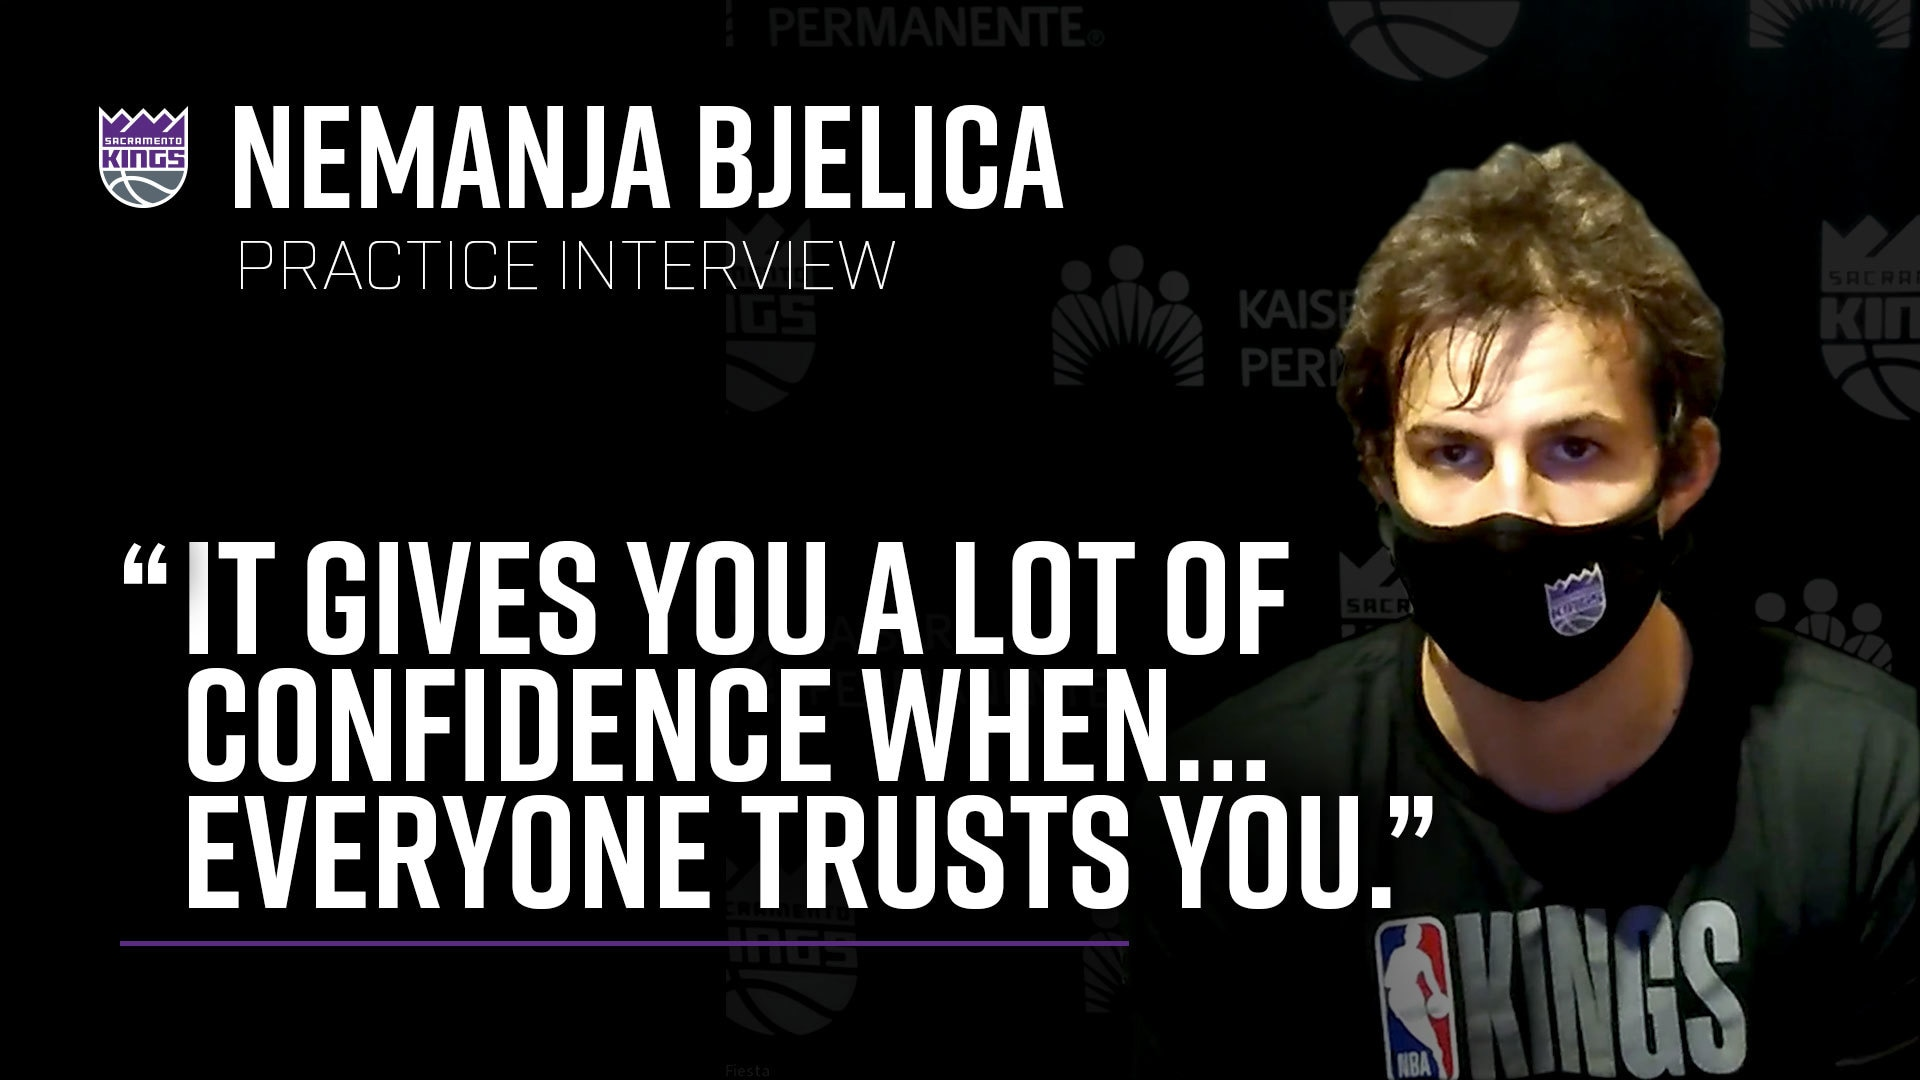 Nemanja Feels Empowered to Make an Impact | Practice Interview 7.21.20